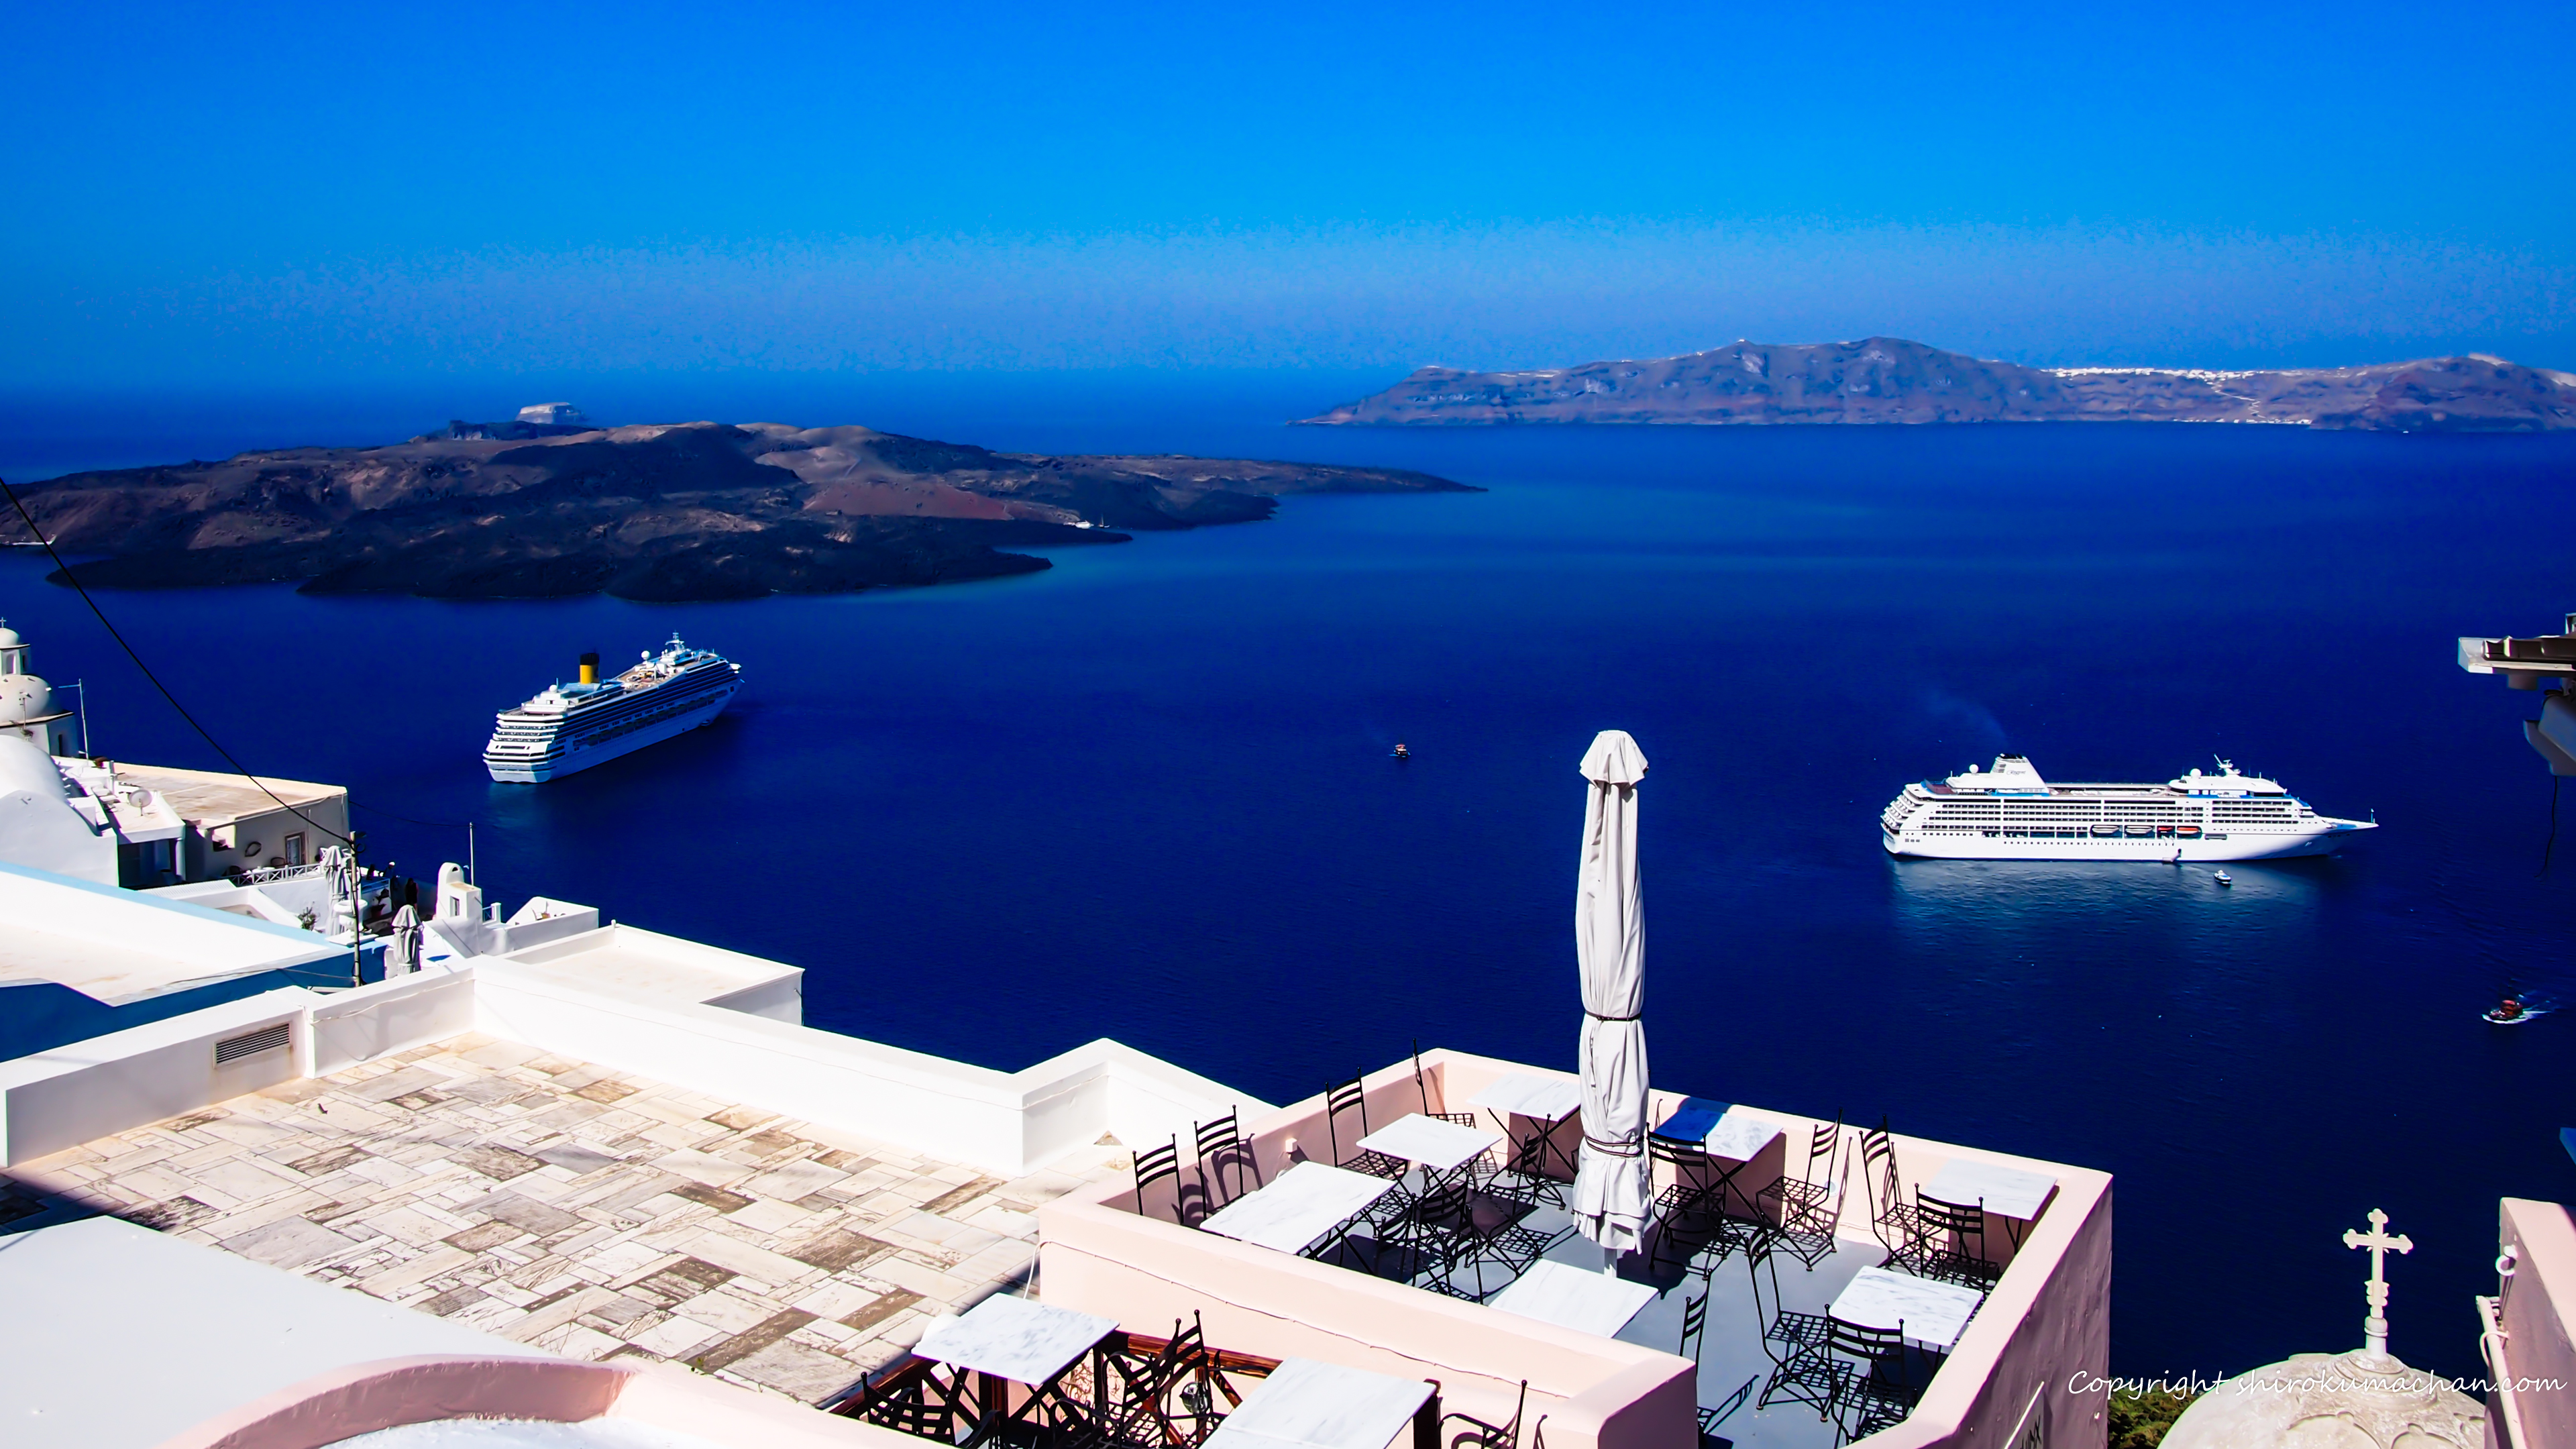 Santorini Greace with Cruise Ships UHD Wall Paper